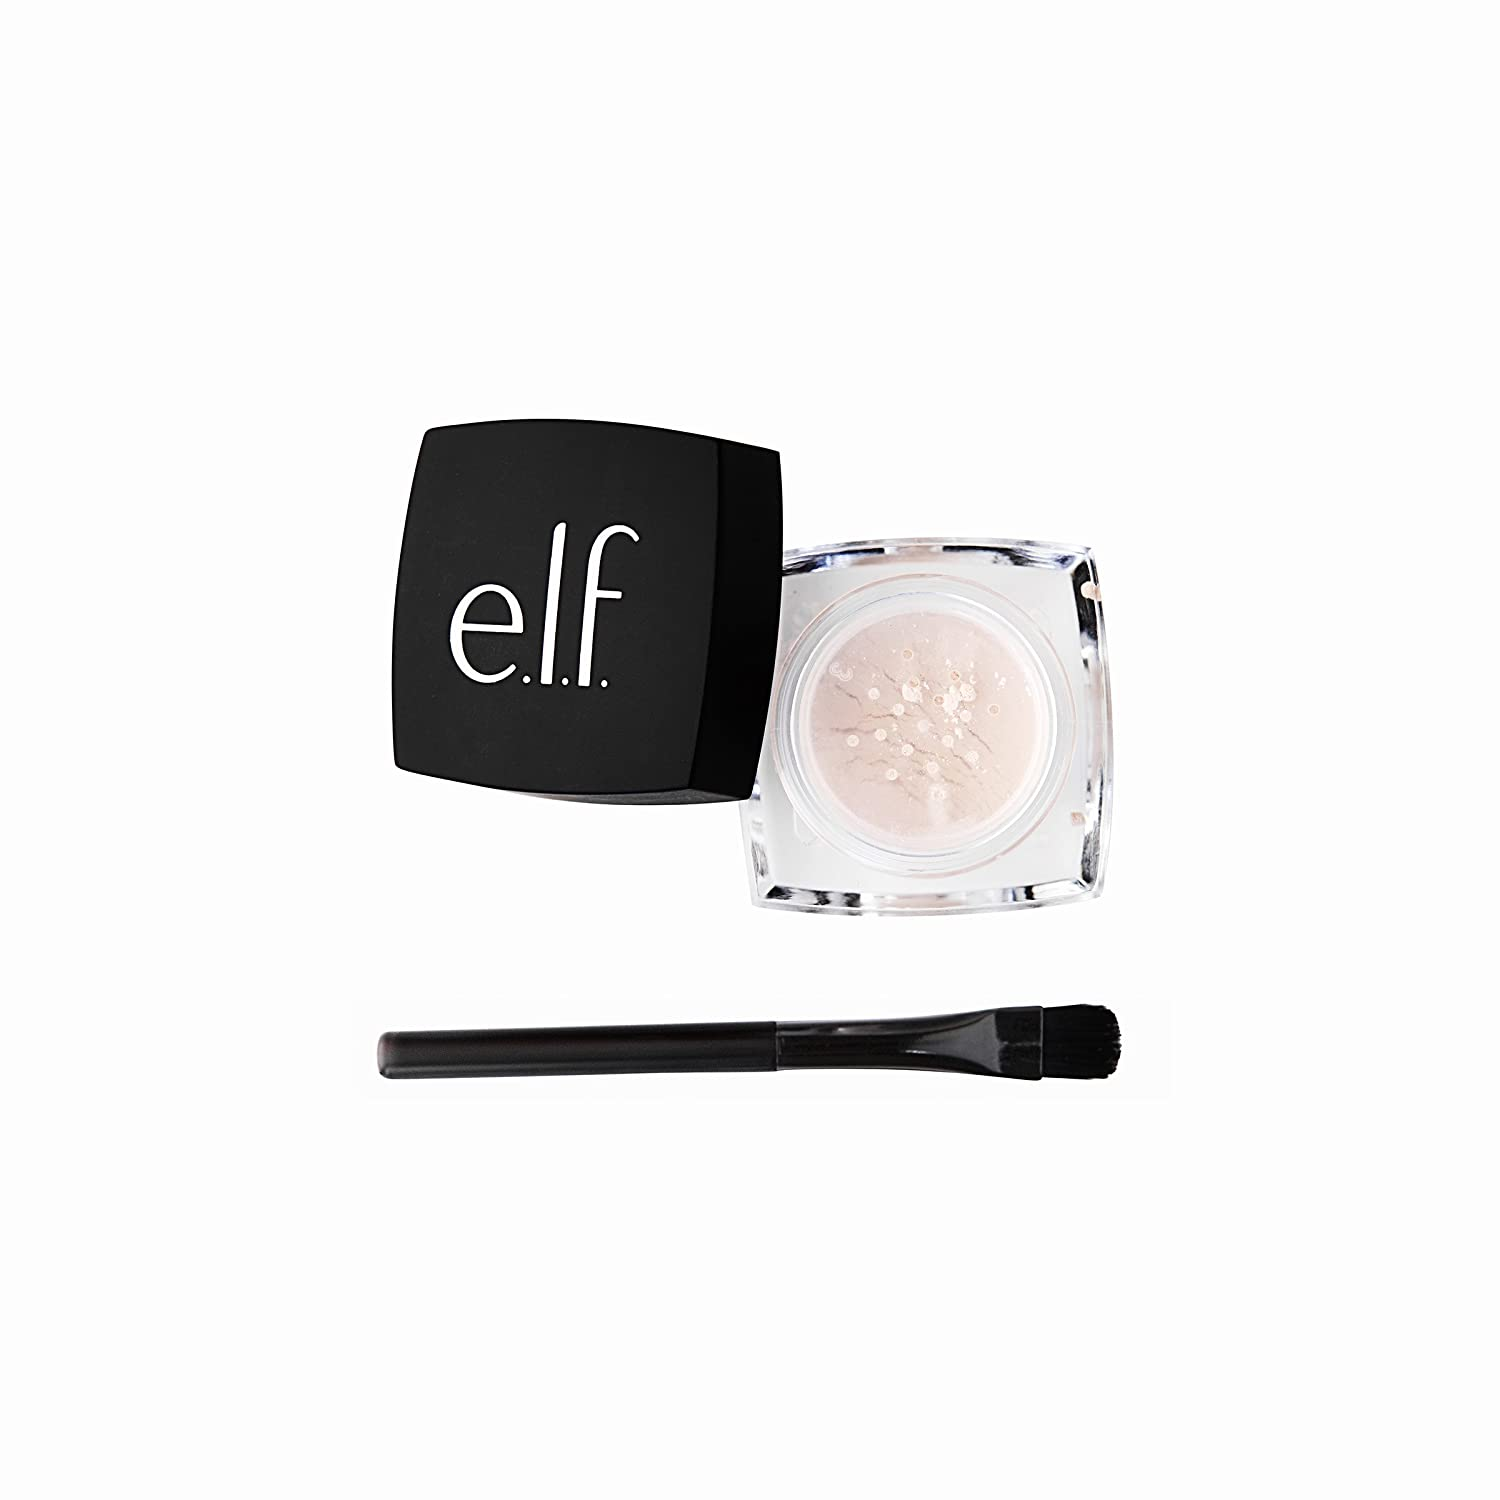 e.l.f. High Definition Best Setting Powder for Dry Skin